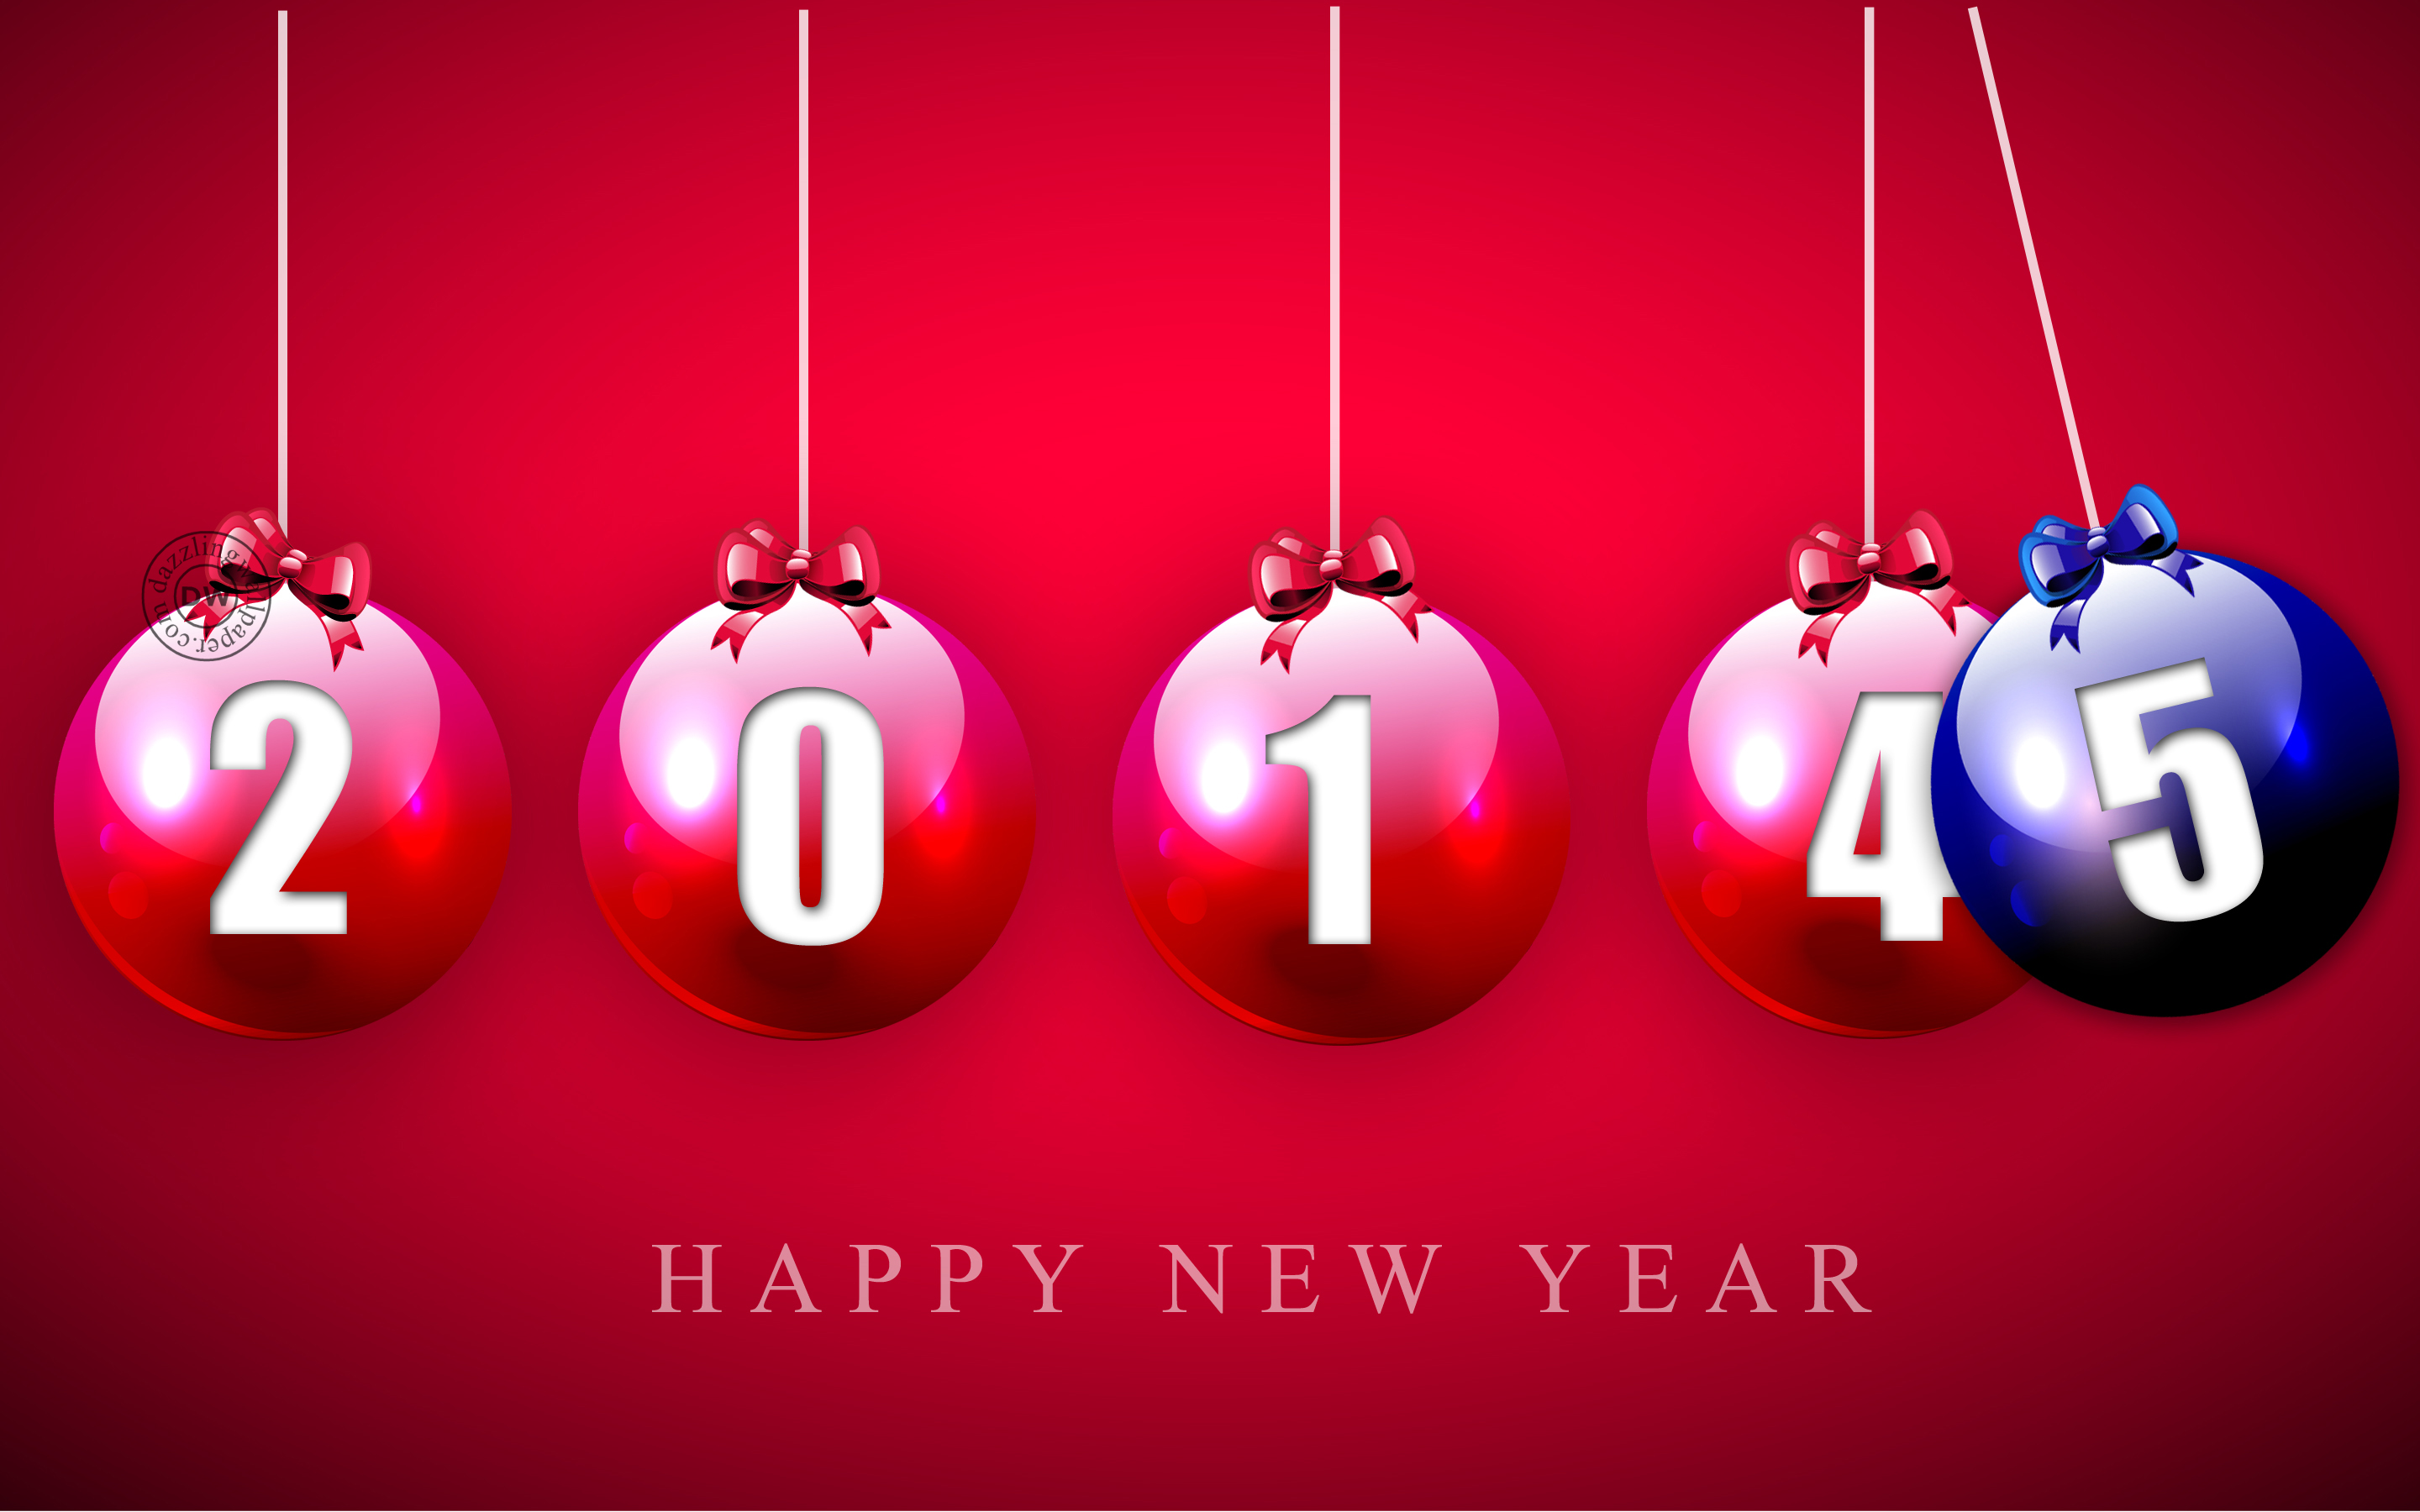 download 2015 HD Wallpapers Top 10 New Year Desktop 2880x1800